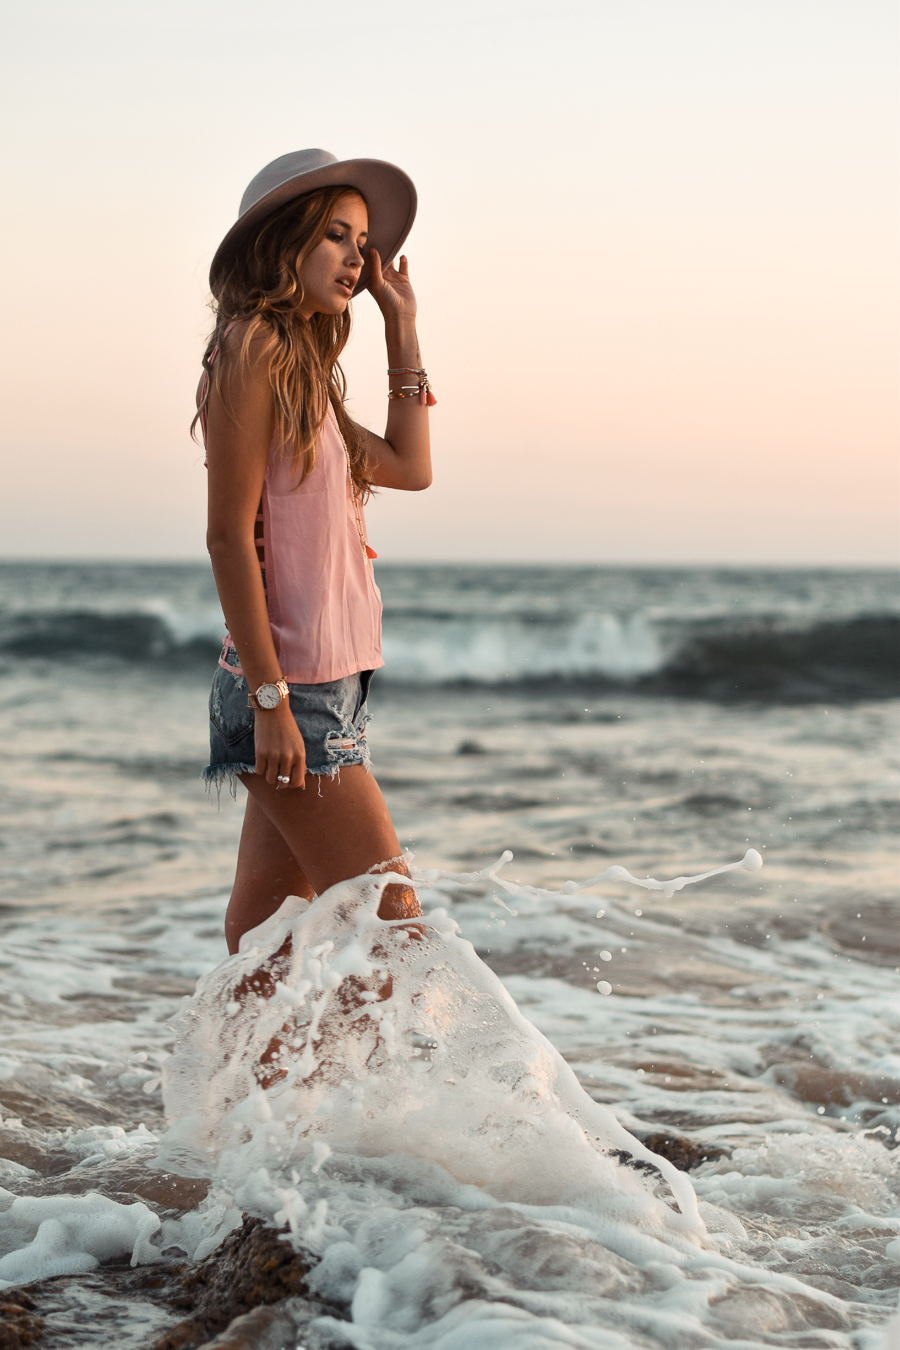 The Denim Shorts Are Of Course A Beach Style Stable Add Pink Sleeveless Top